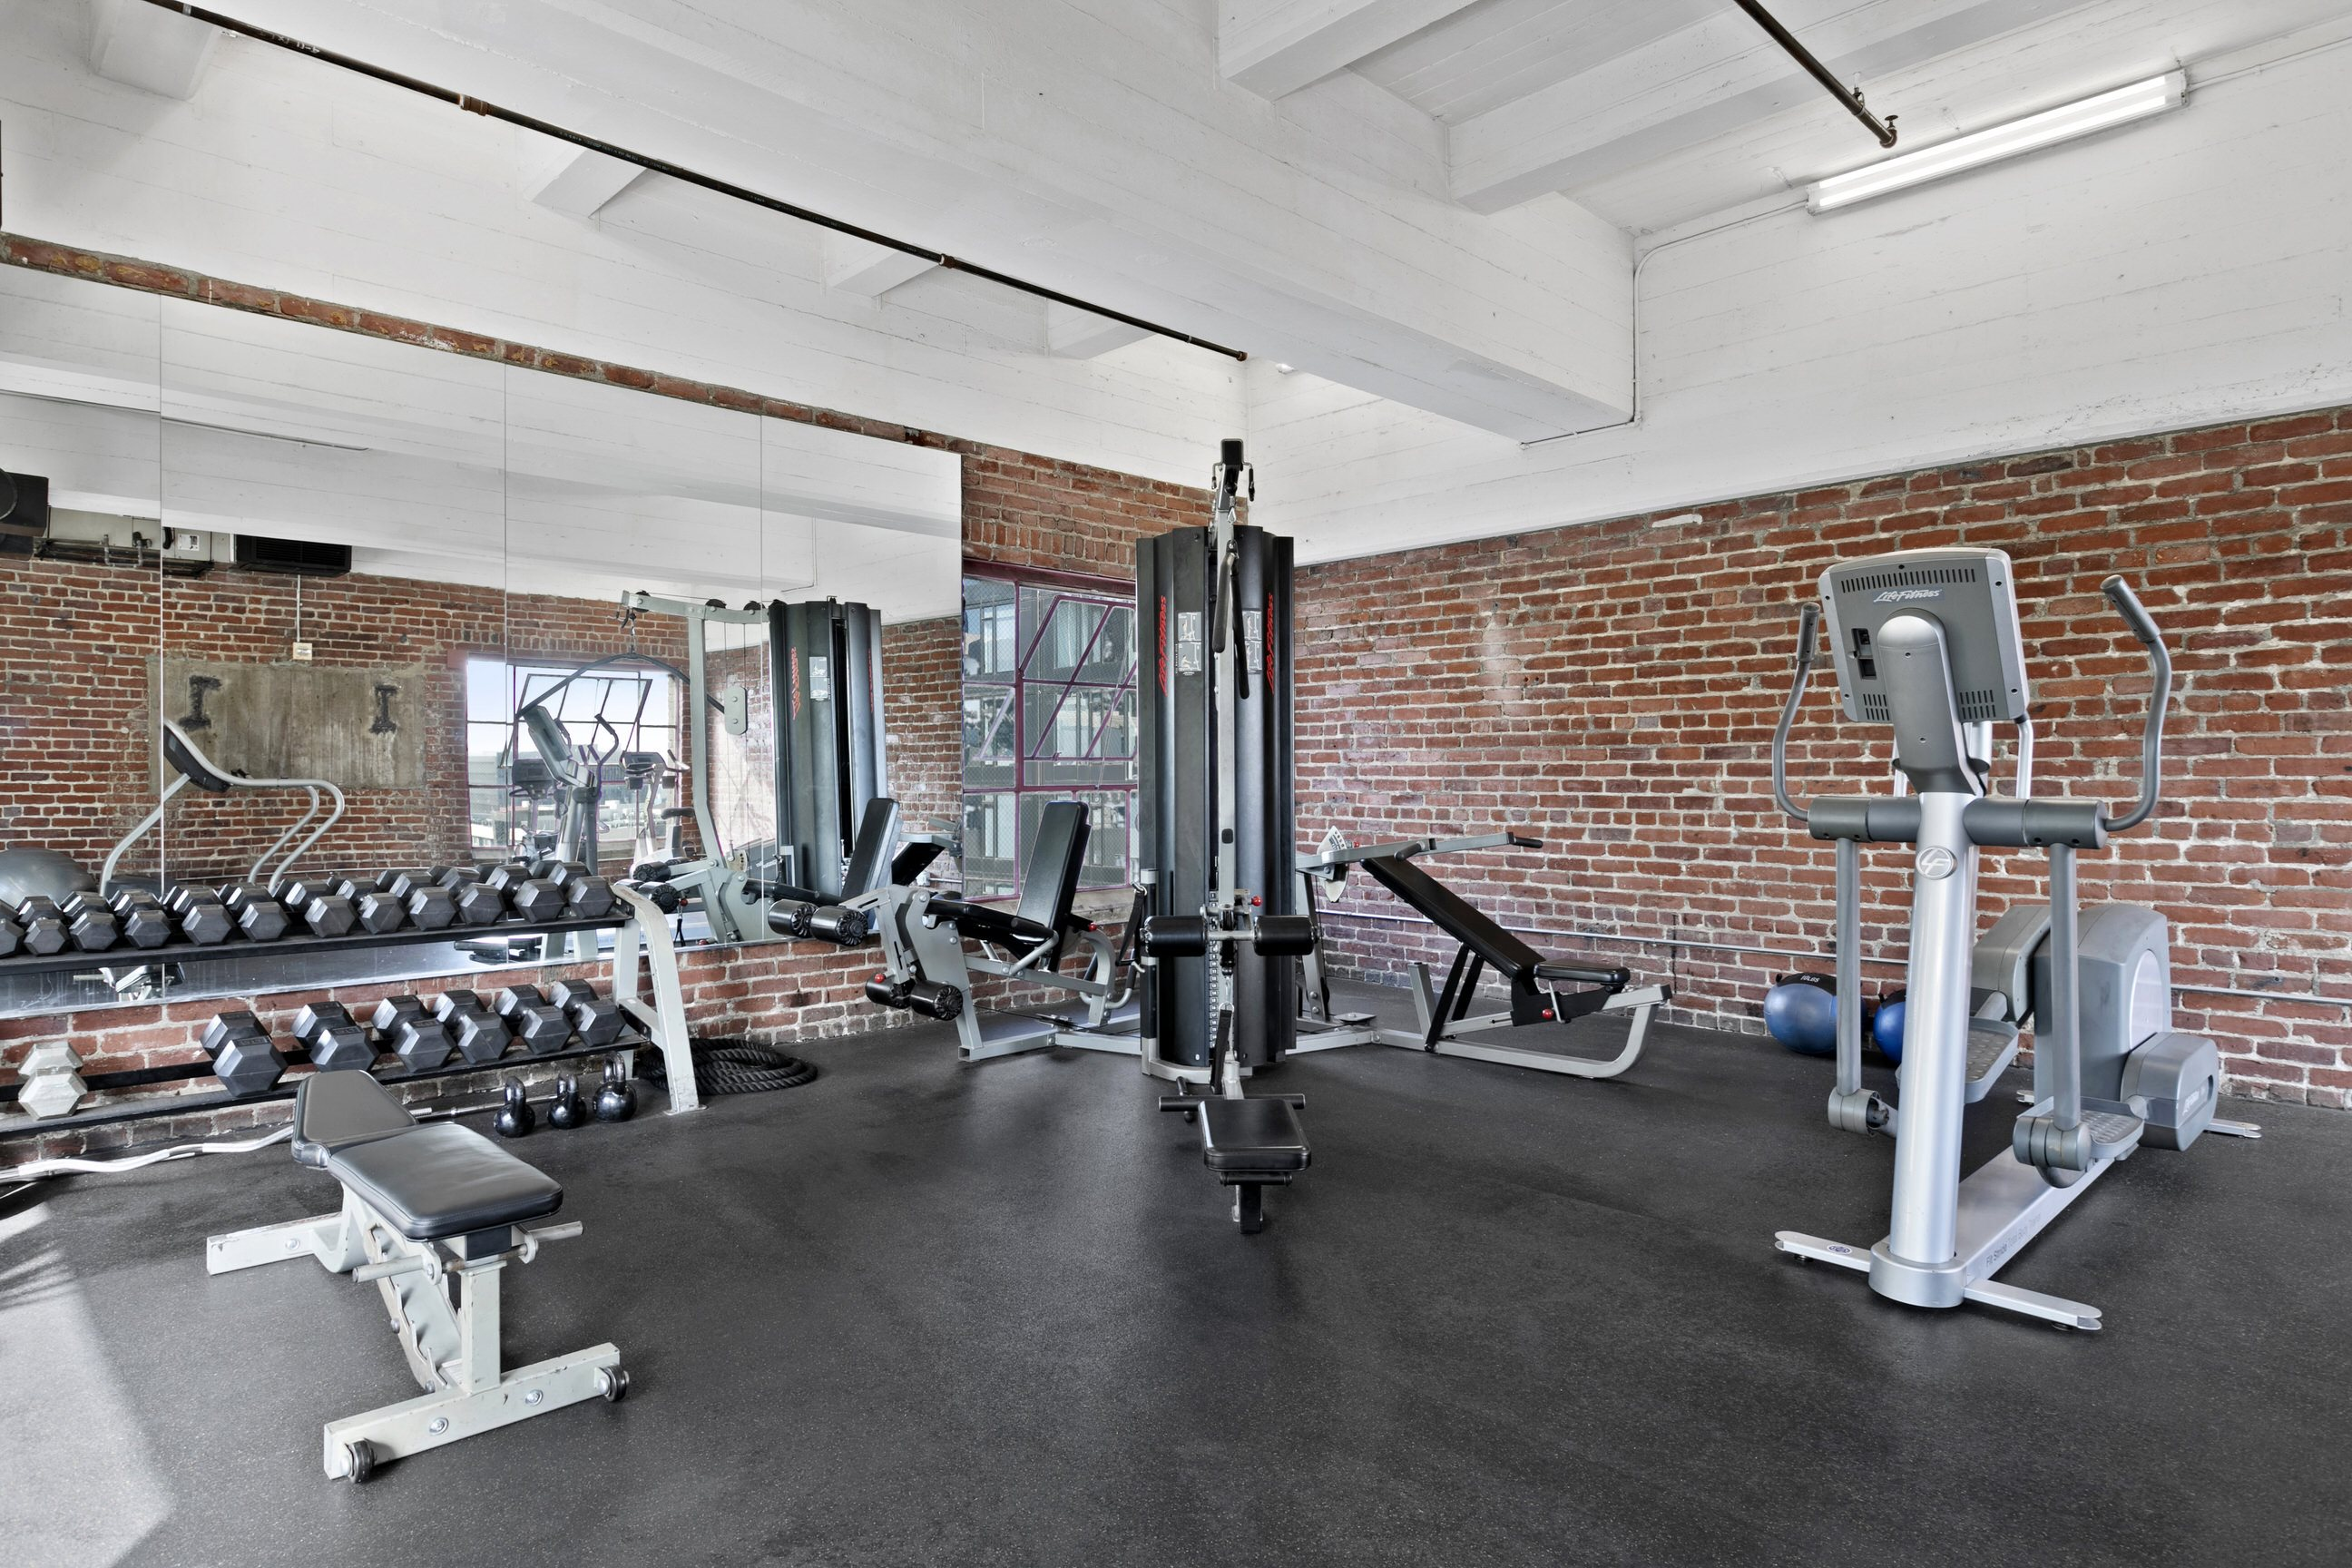 24 Hour Fitness Center at South Park Lofts 818 S Grand Ave, Los Angeles, CA 90017